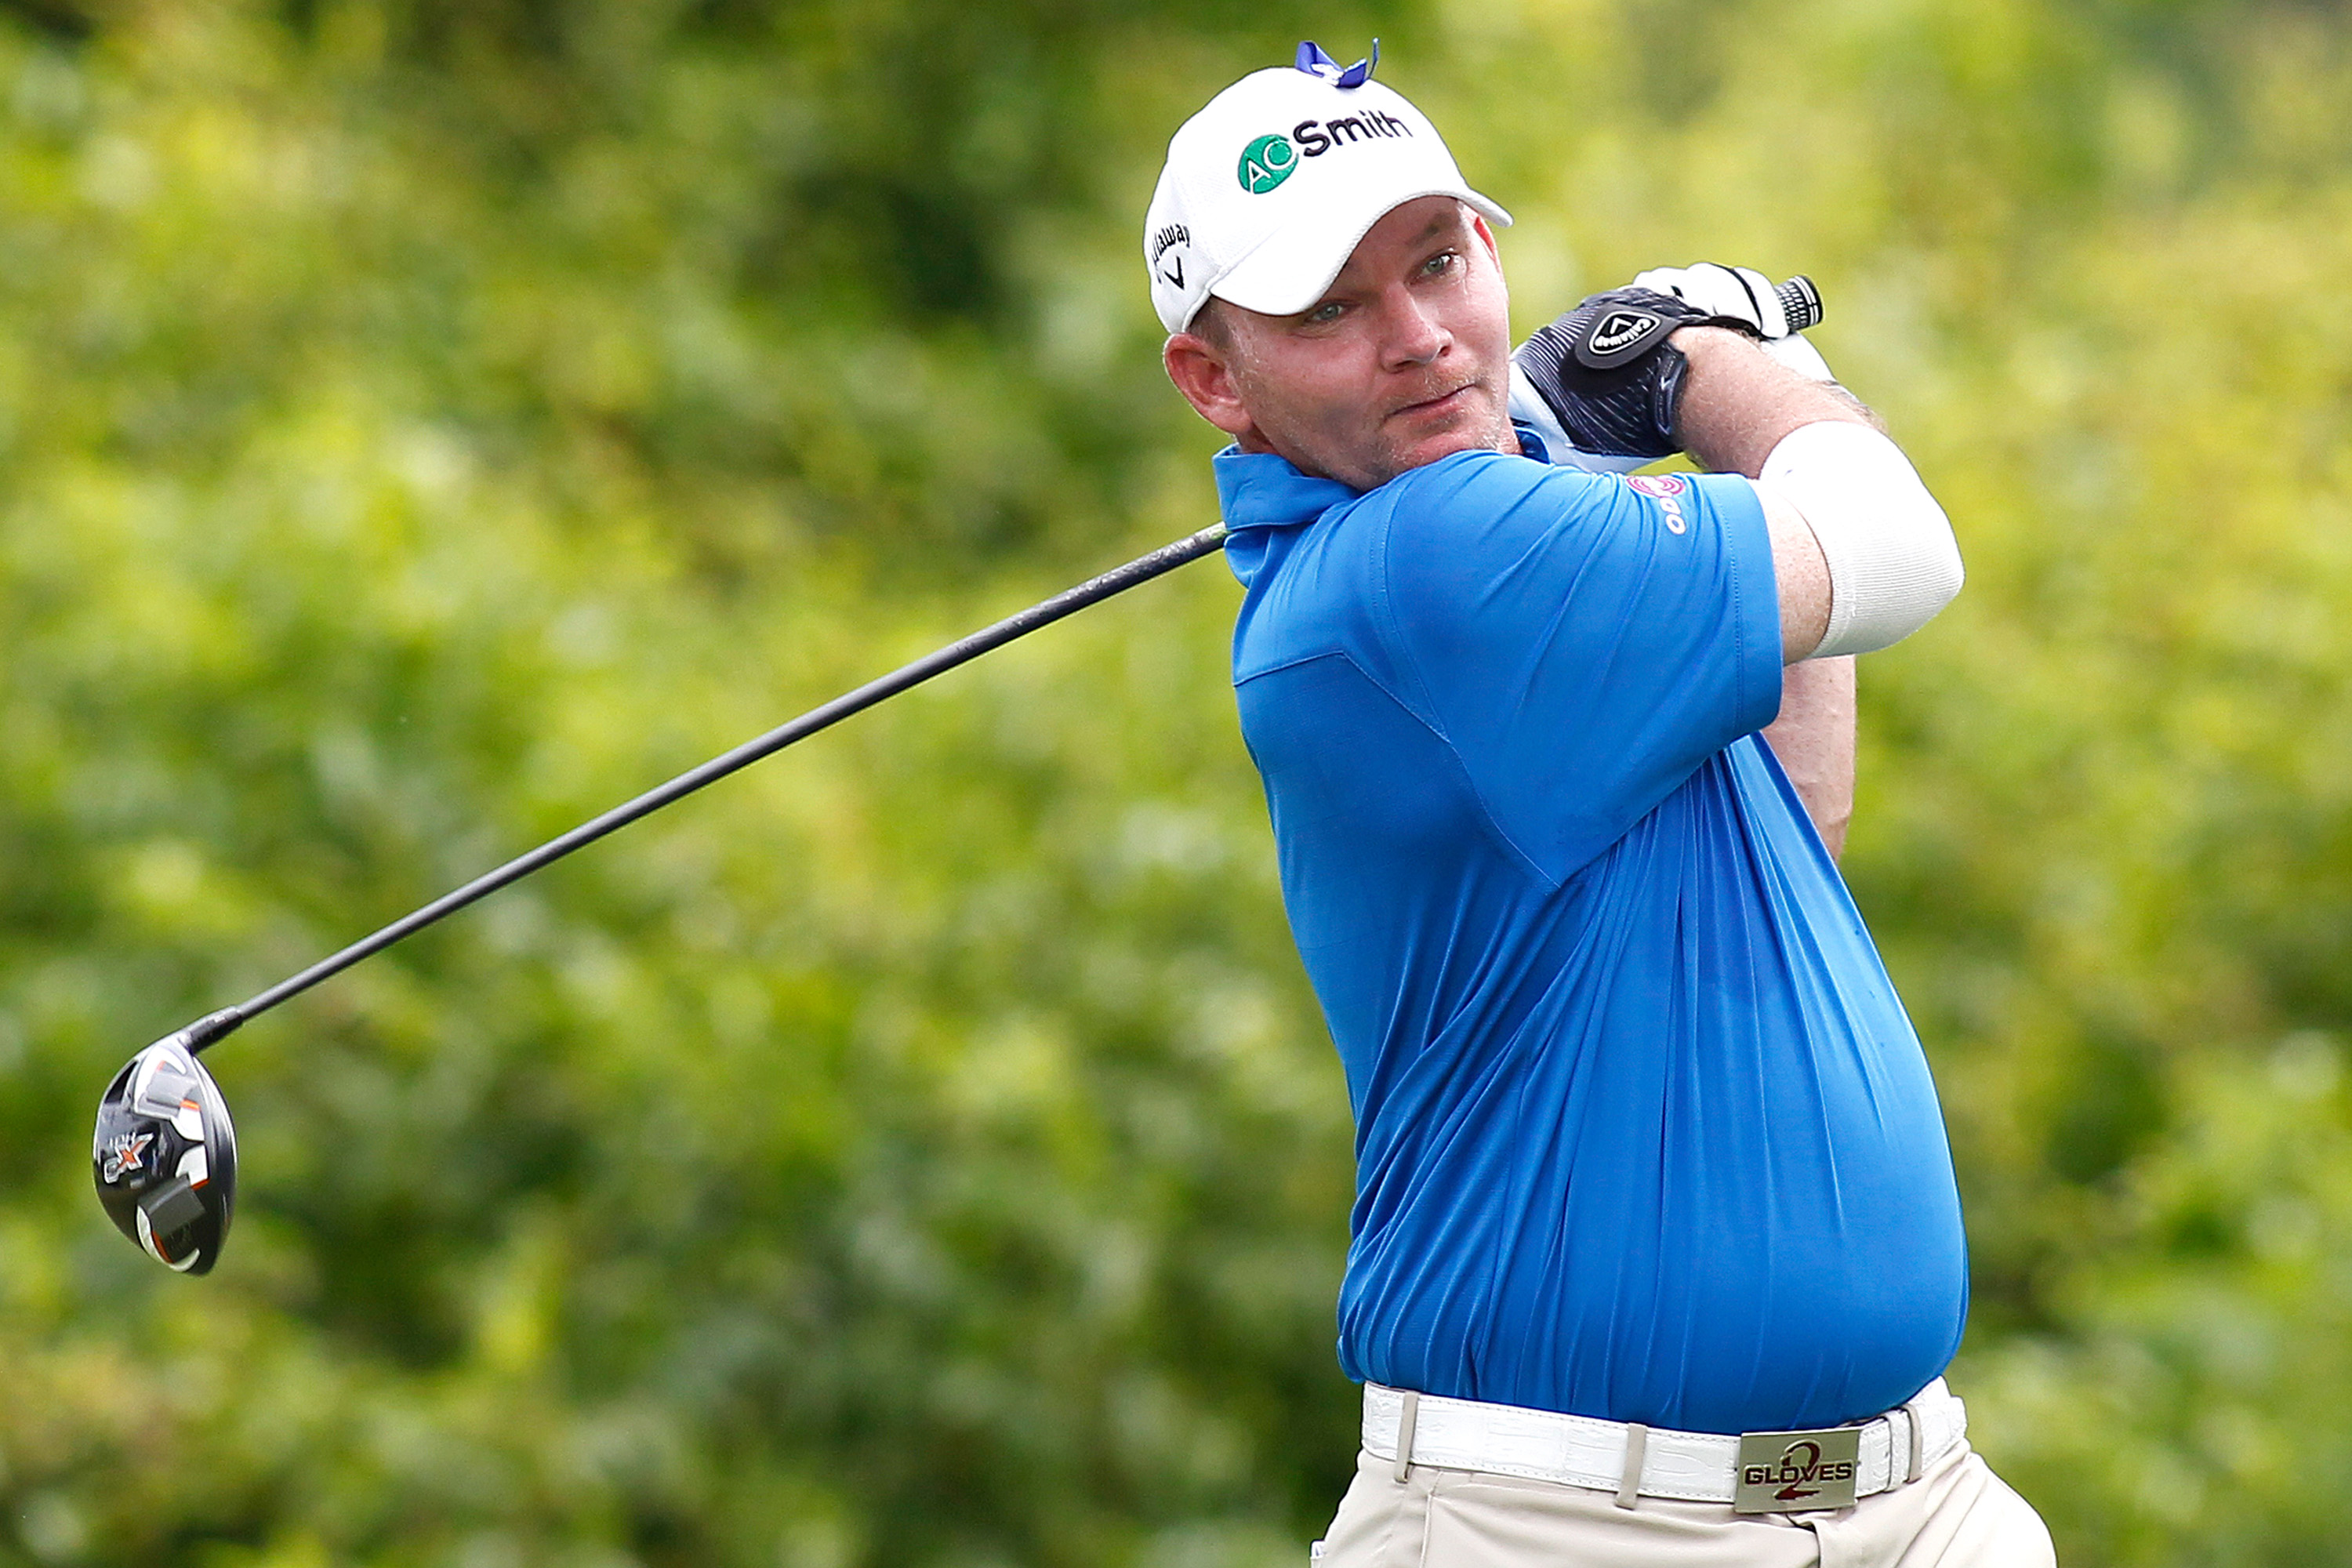 Tommy Gainey tees off on the 2nd hole during the third round of the PGA Zurich Classic golf tournament at TPC Louisiana in Avondale, La., Saturday, April 26, 2014. (AP Photo/Jonathan Bachman)